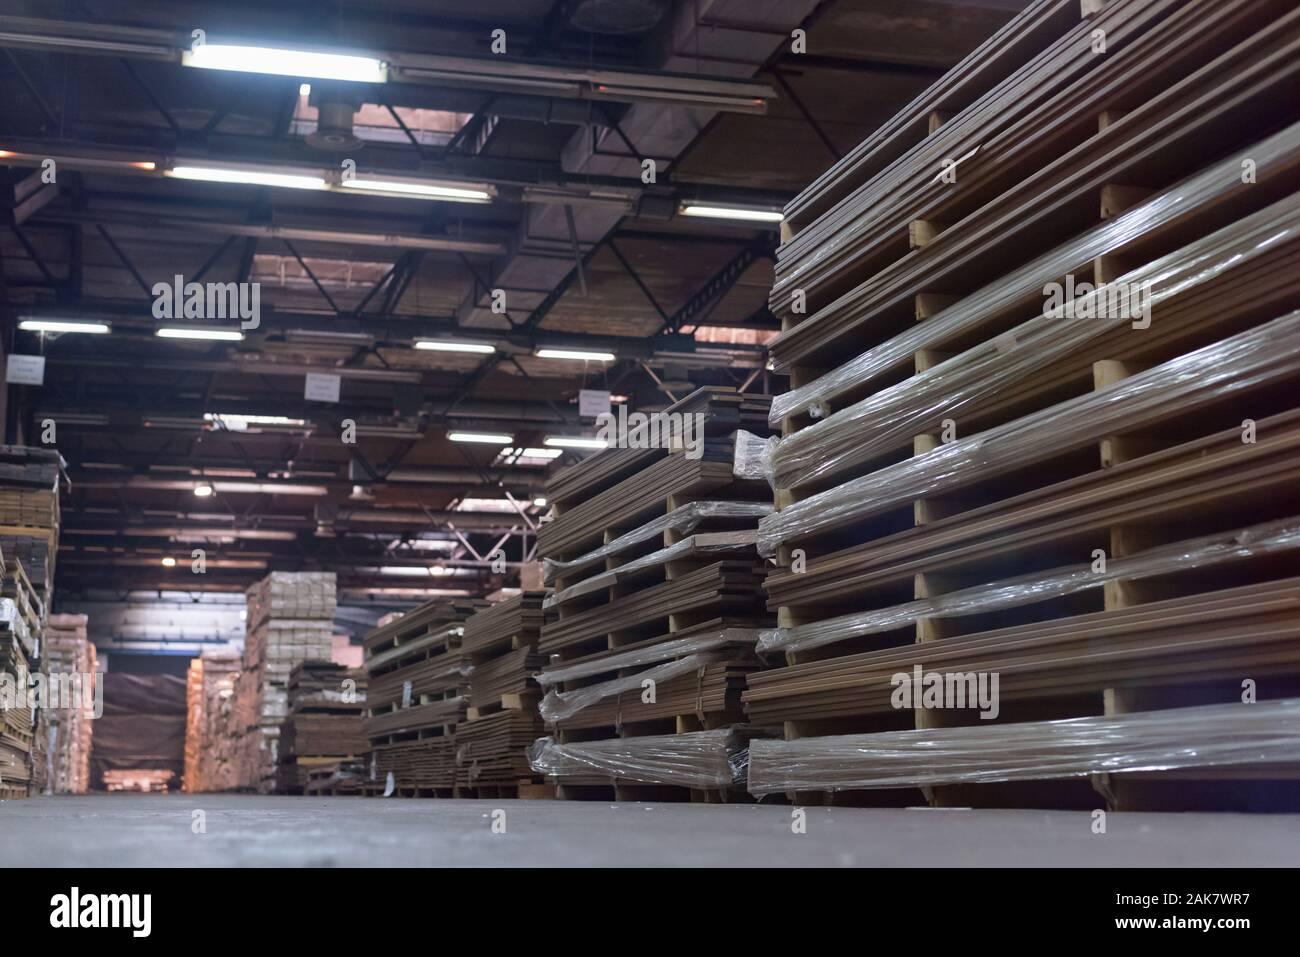 Timber Flooring Factory. Pile of cut wood in factory storage warehouse. Lumber in warehouse. Stock Photo